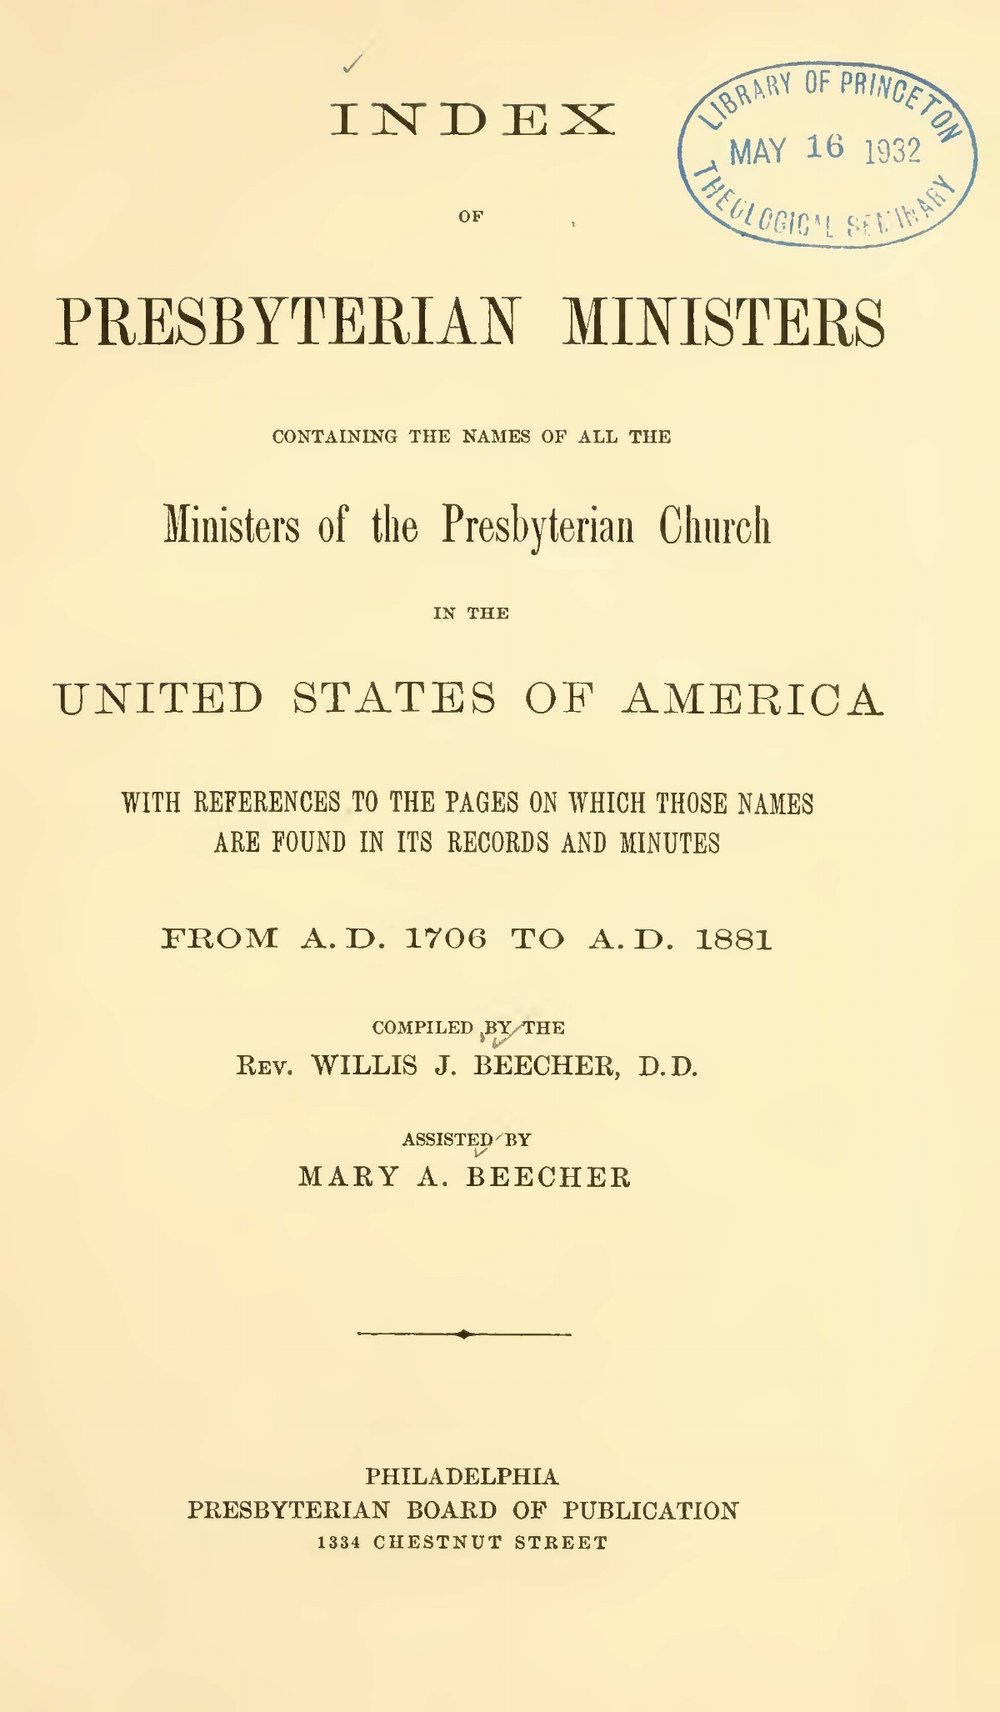 Beecher, Willis Judson, Index of Presbyterian Ministers Title Page.jpg